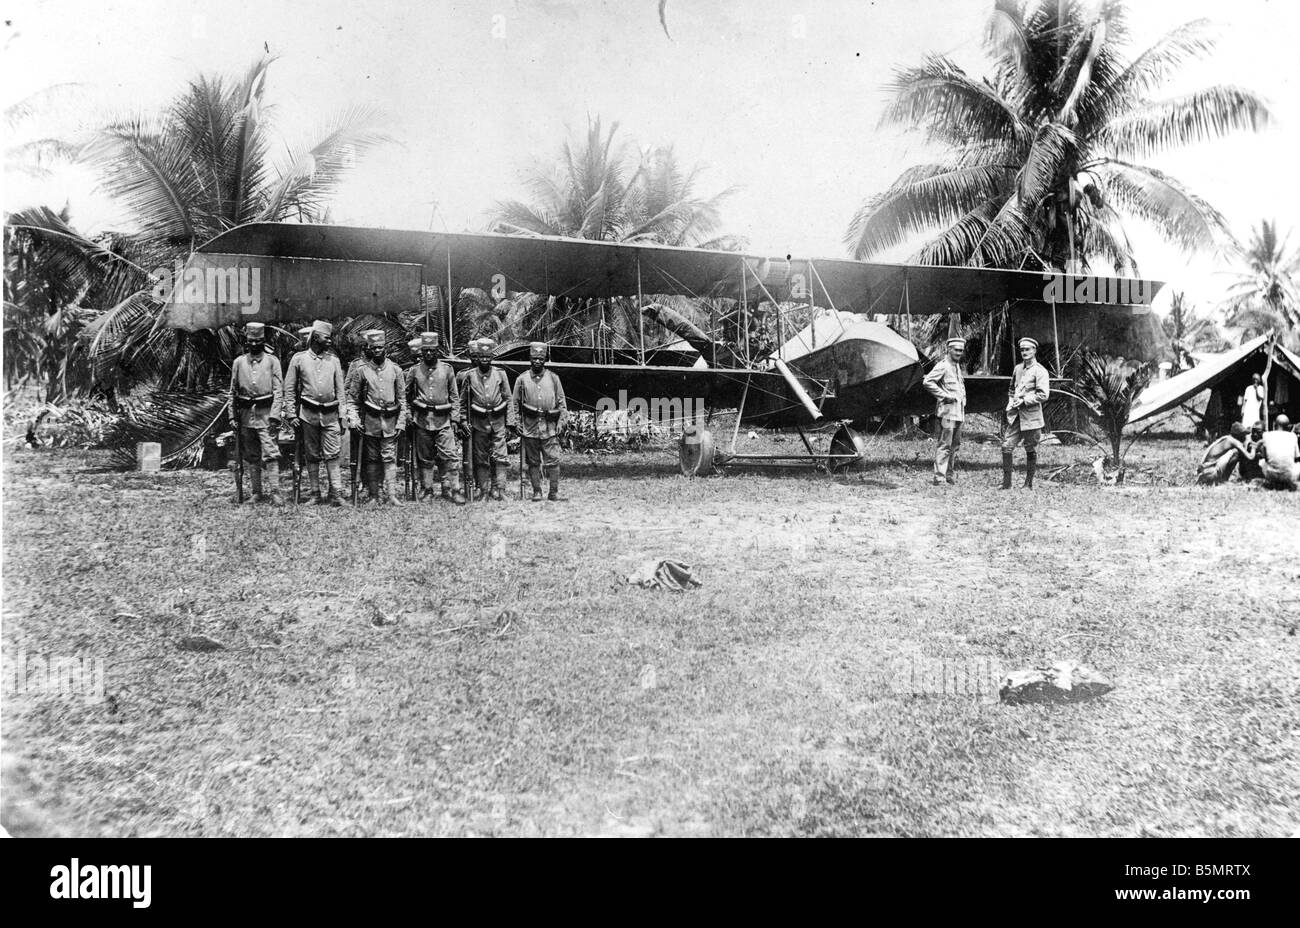 9AF 1914 0 0 A5 1 Askaris by airplane Ger East Africa World War 1 War in the colonies German East Africa now Tanzania Native aux Stock Photo